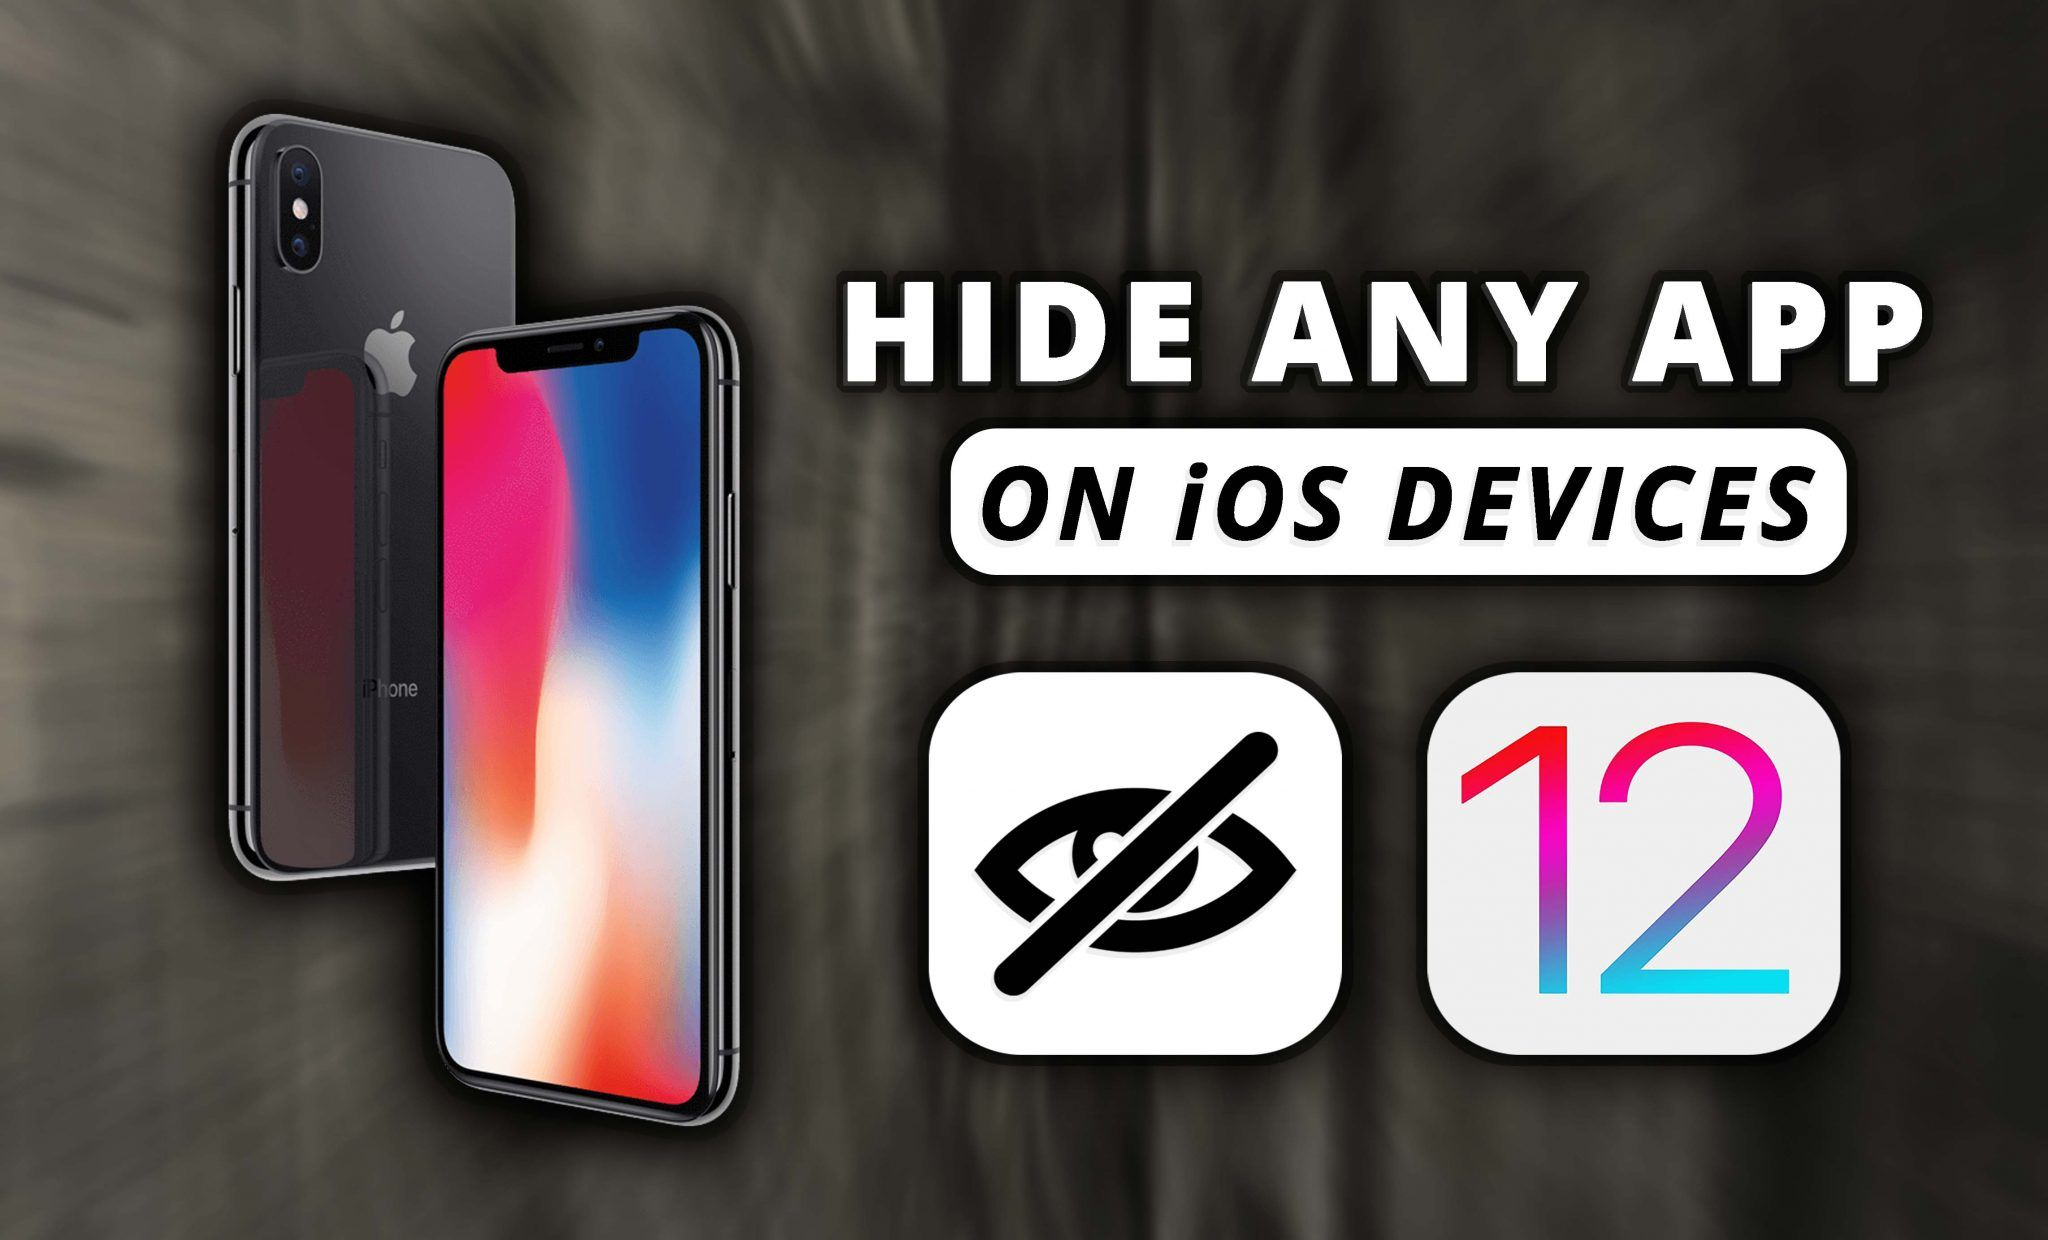 How to Hide Any App on iOS Devices (iPhone, iPad, iPod)